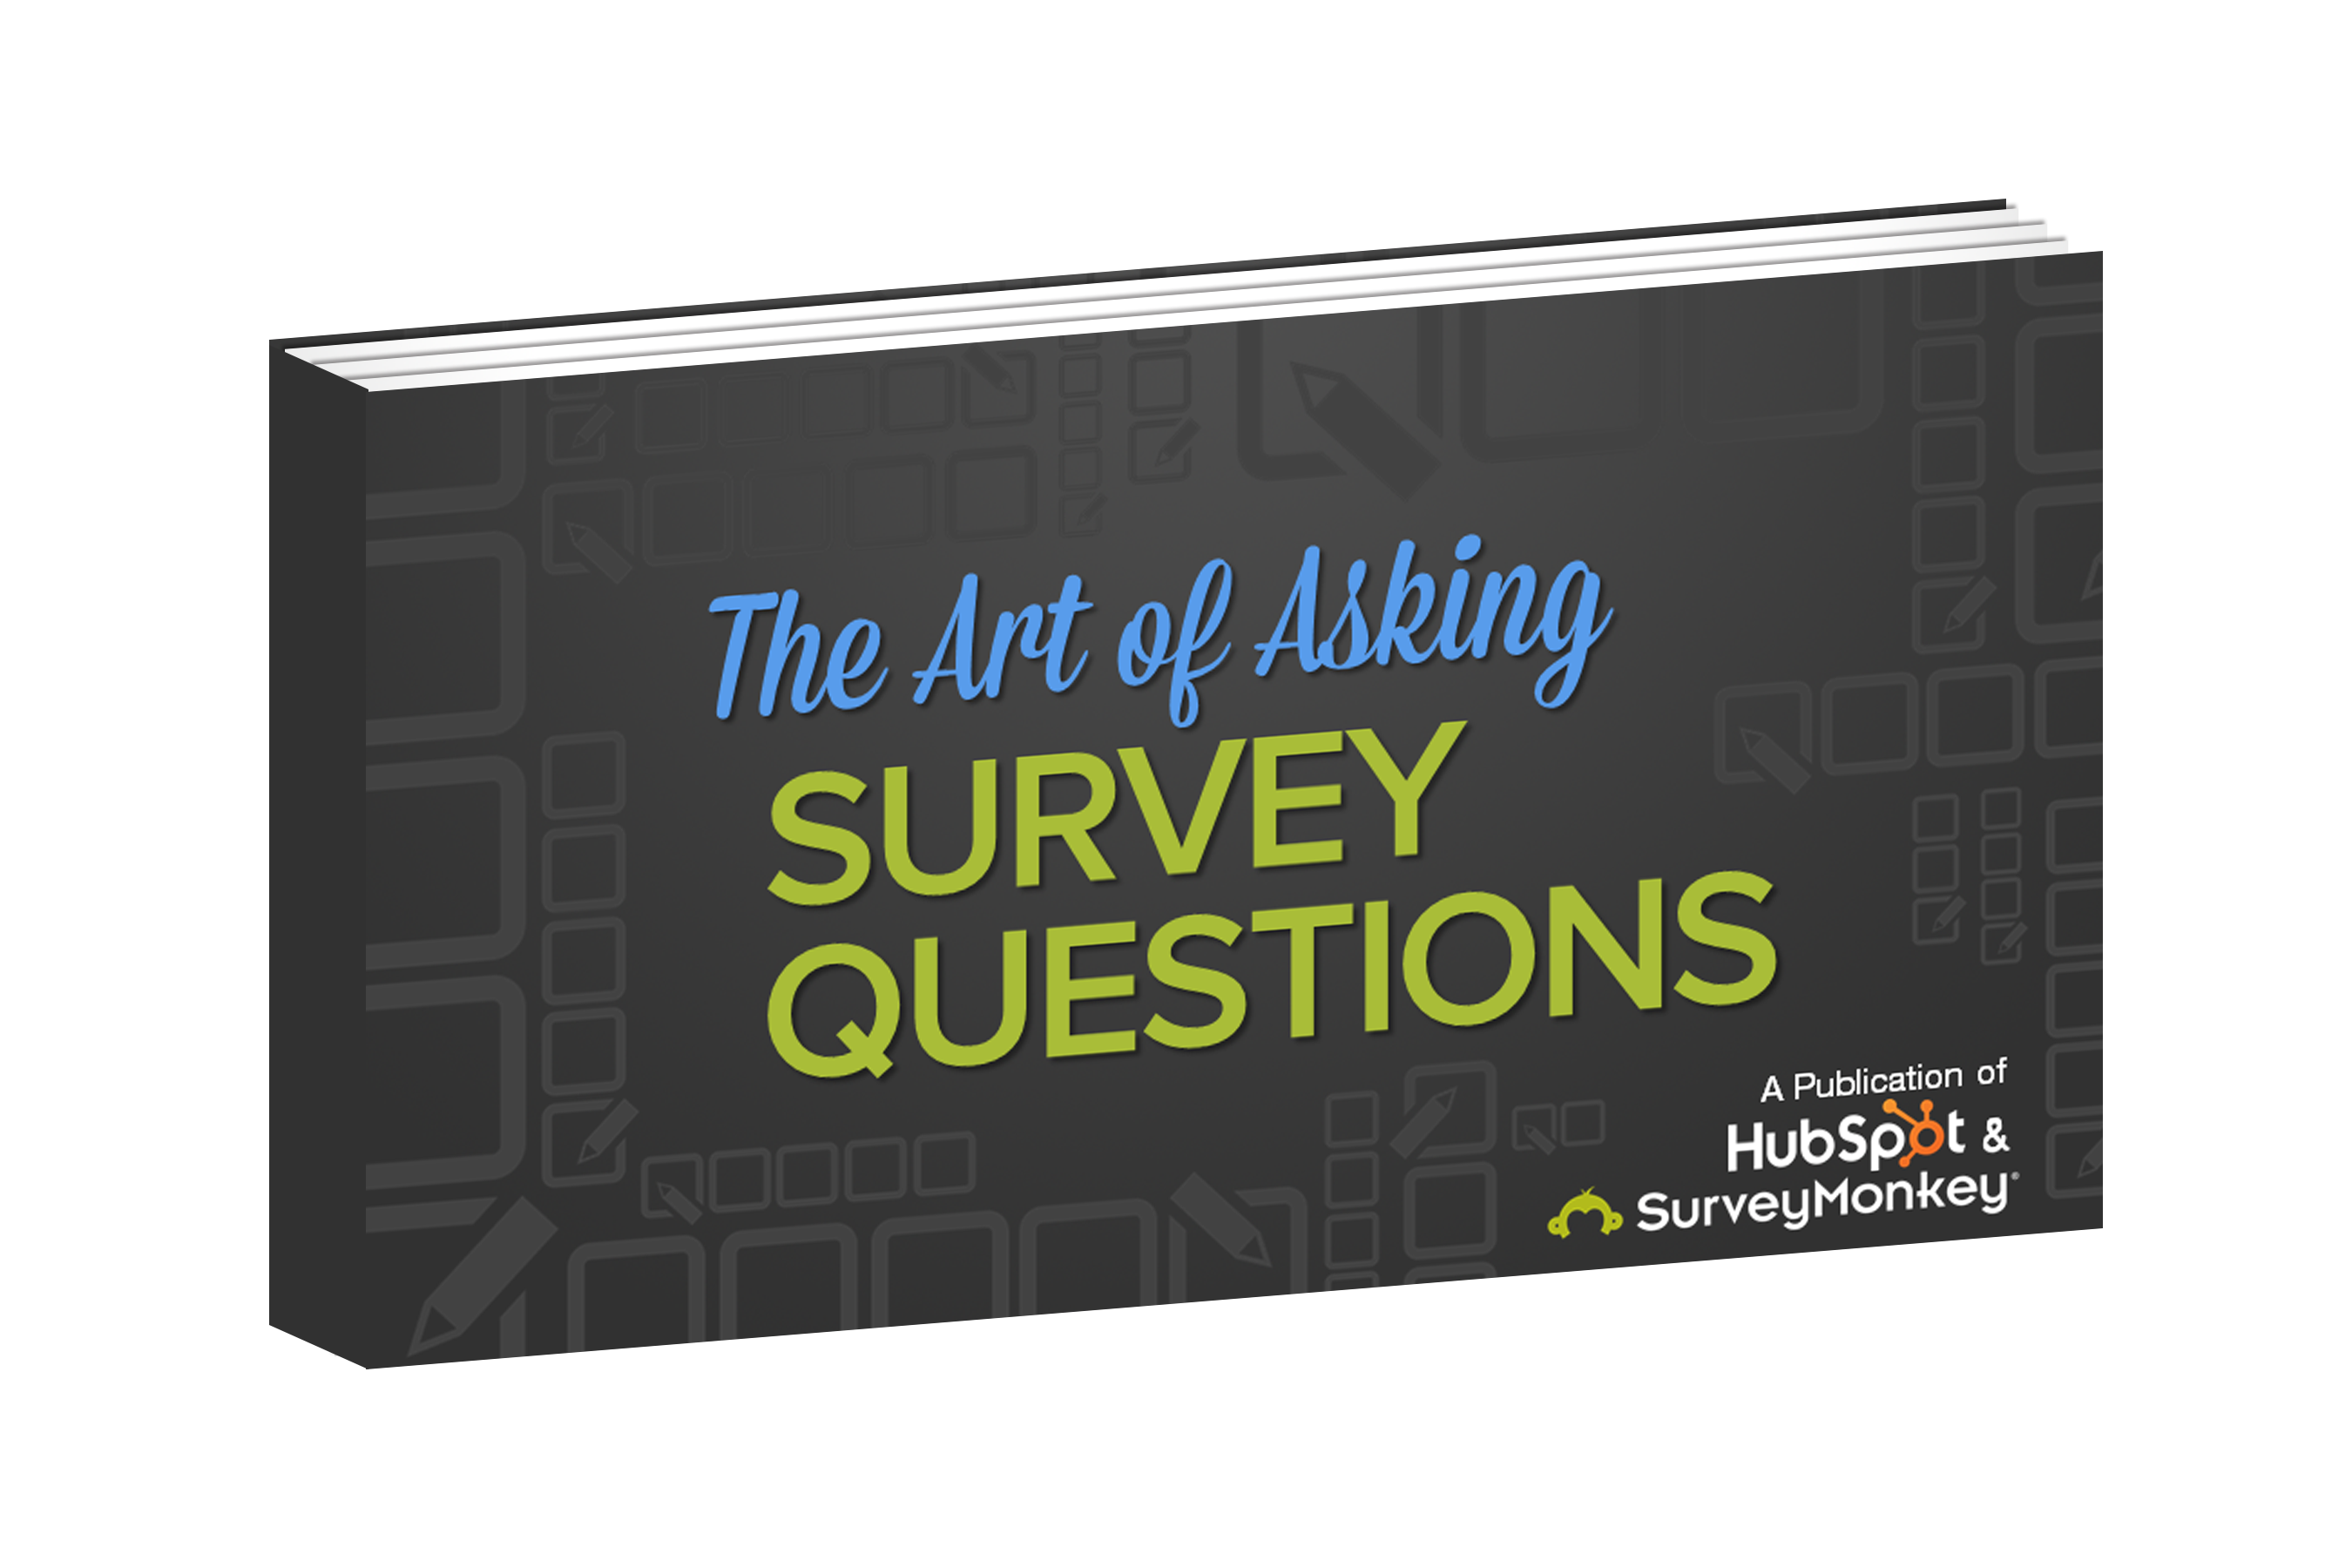 Art of Asking Survey Questions